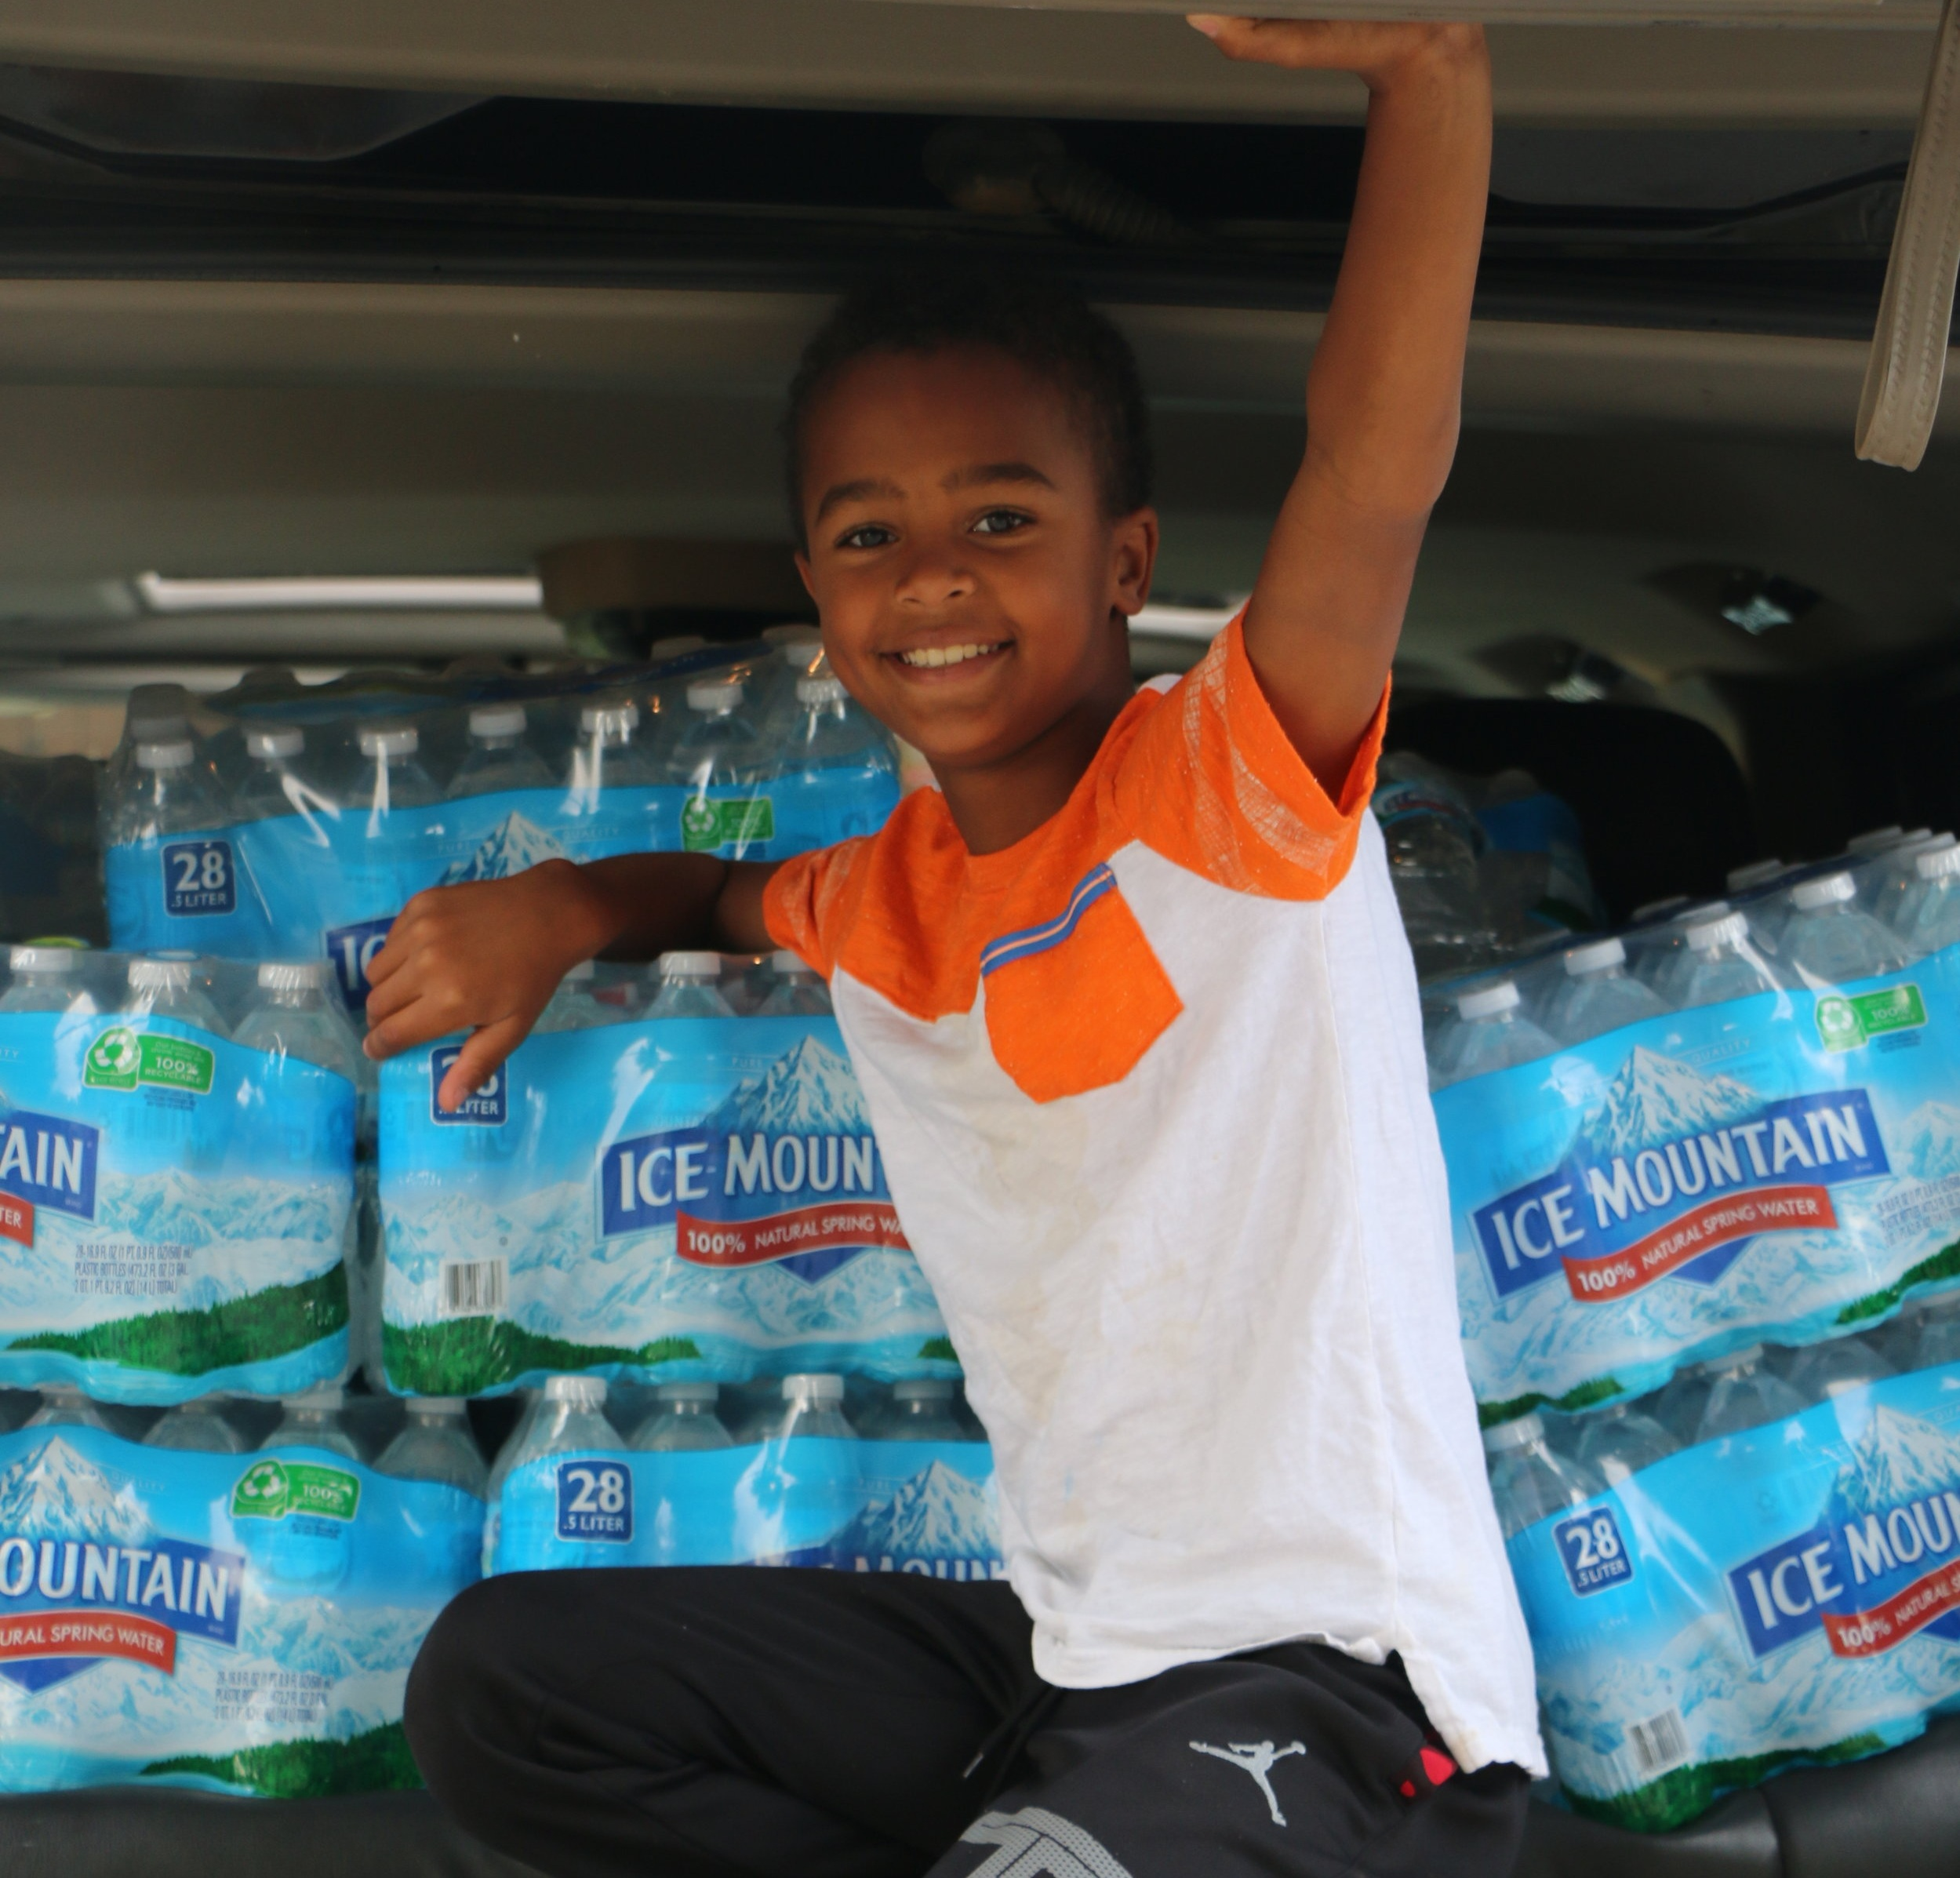 Jaiden collects donations for Puerto Rico - It took one billboard with a message of a need for food and water and Jaiden Henry was on a mission to collect truck fulls of food and water to be shipped to Puerto Rico to assist hurricane survivors.